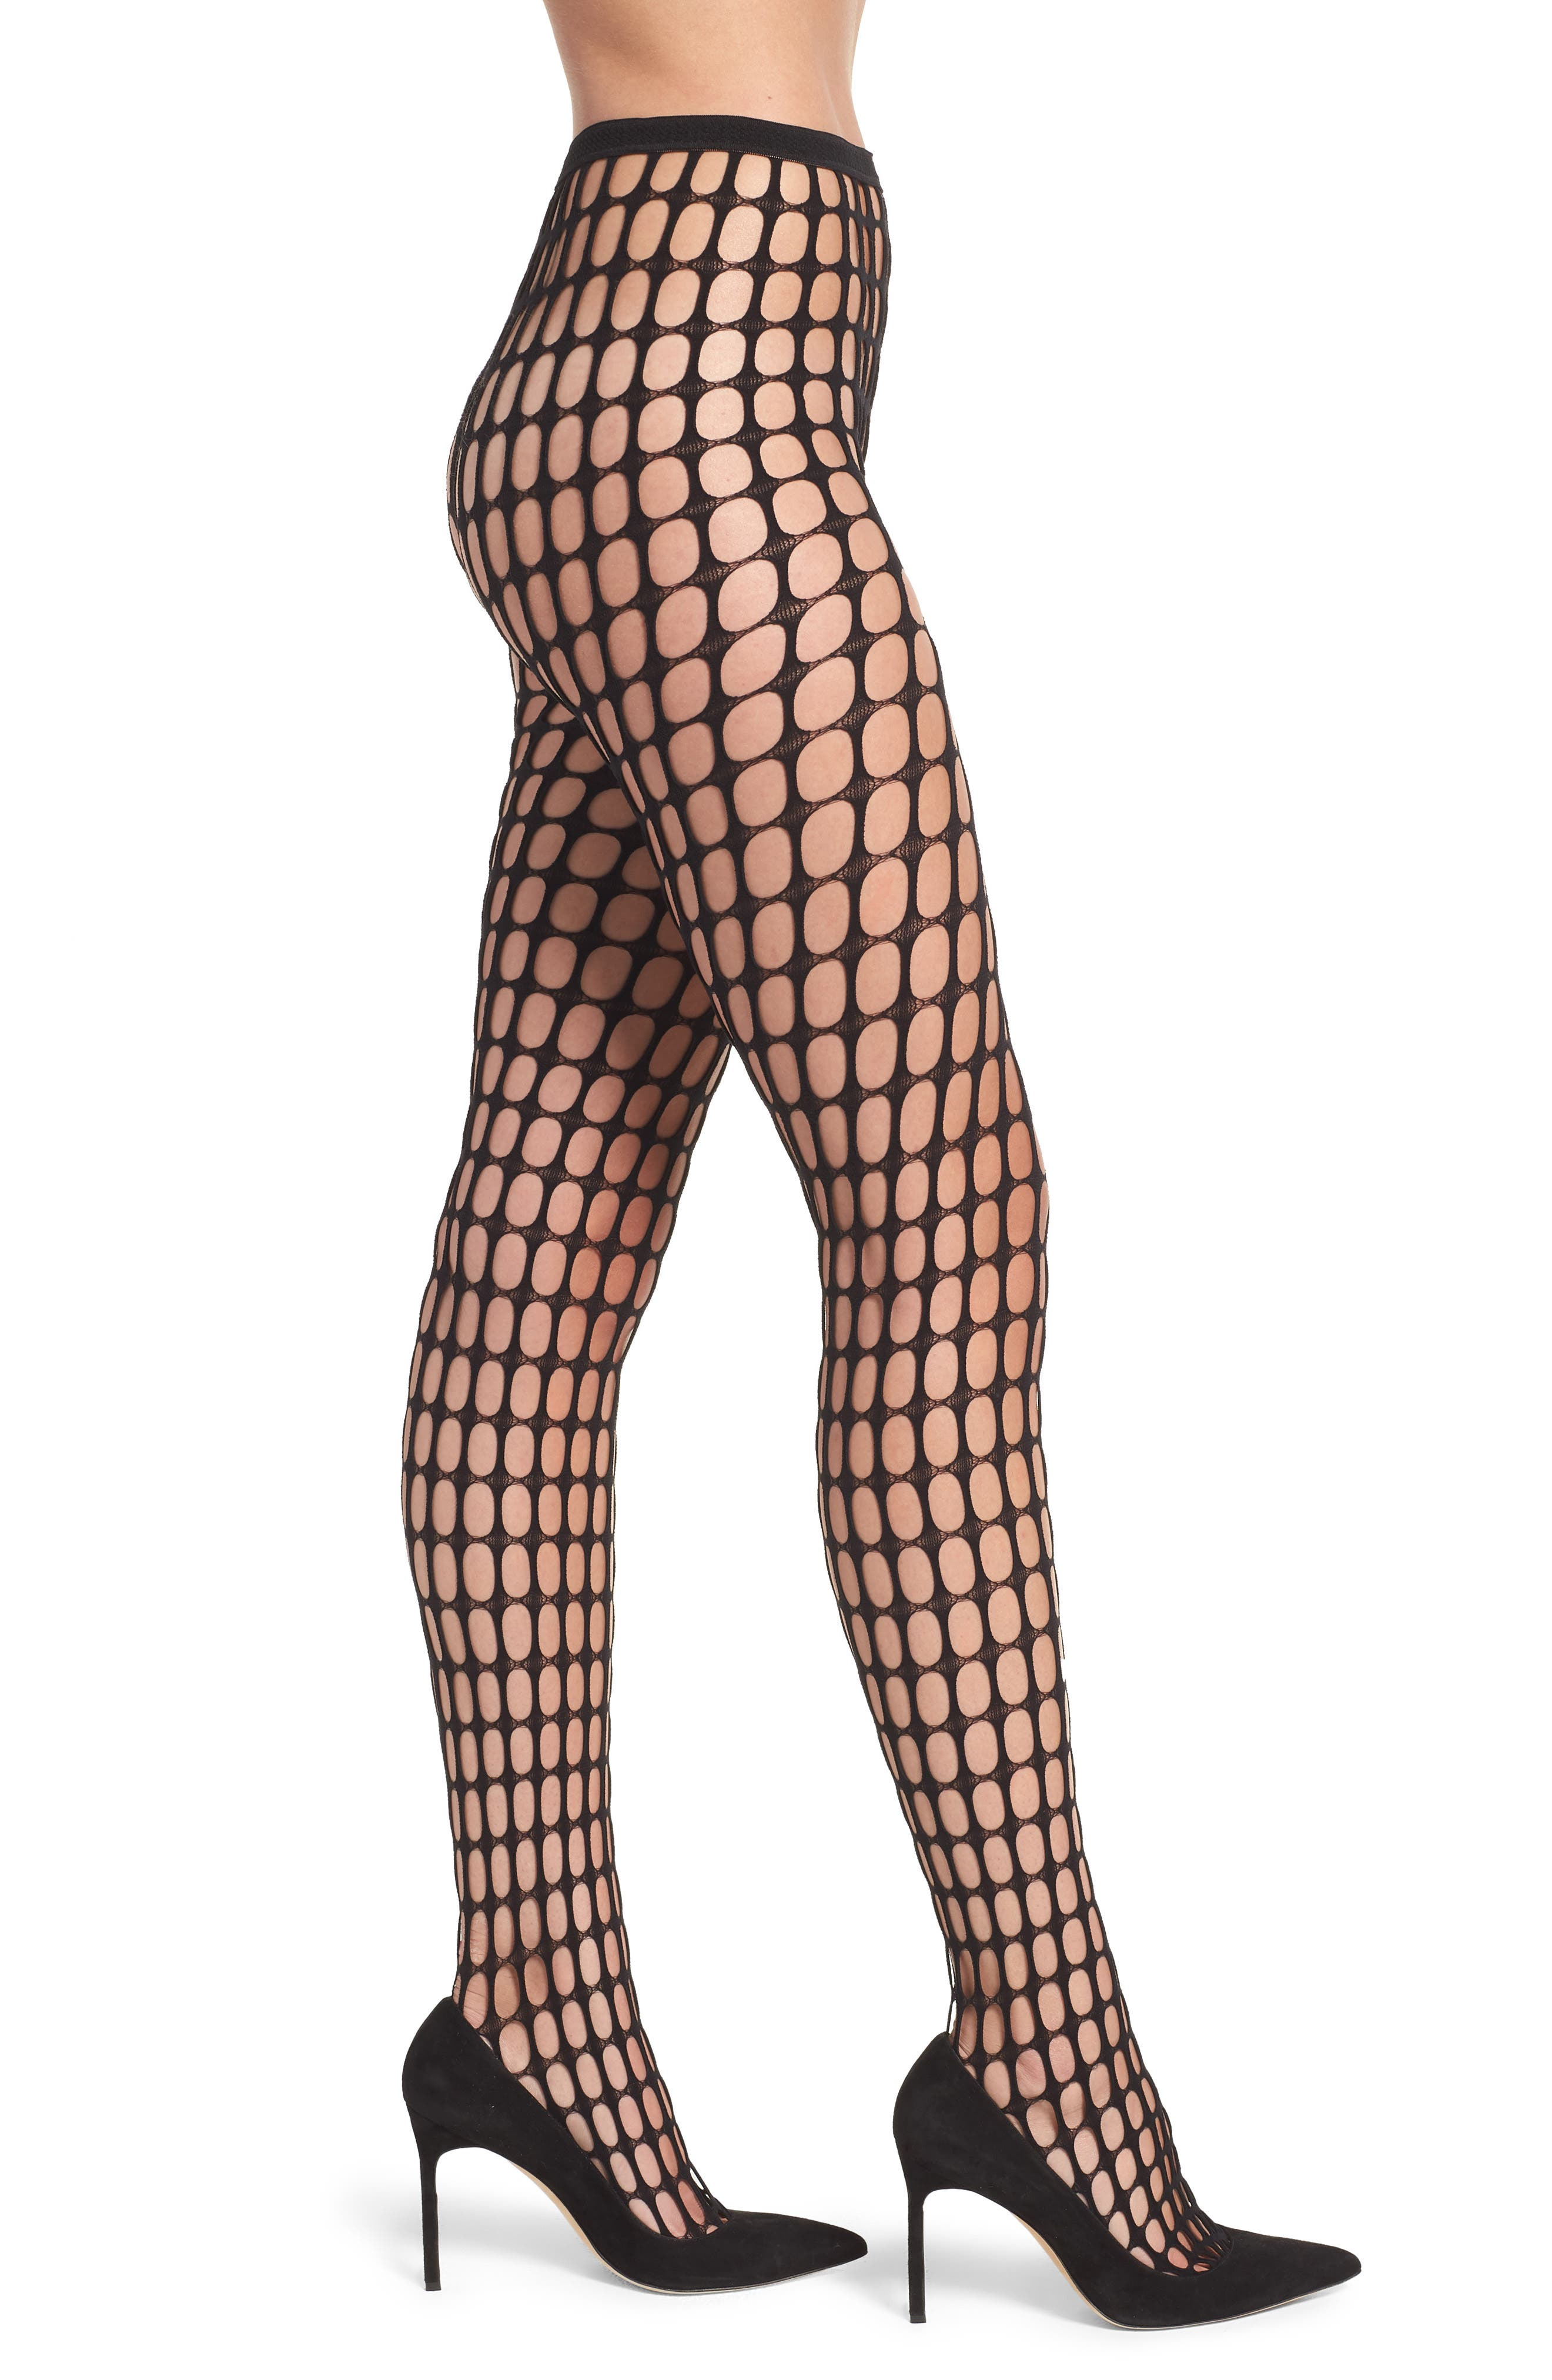 PRETTY POLLY Oblong Net Tights in Black